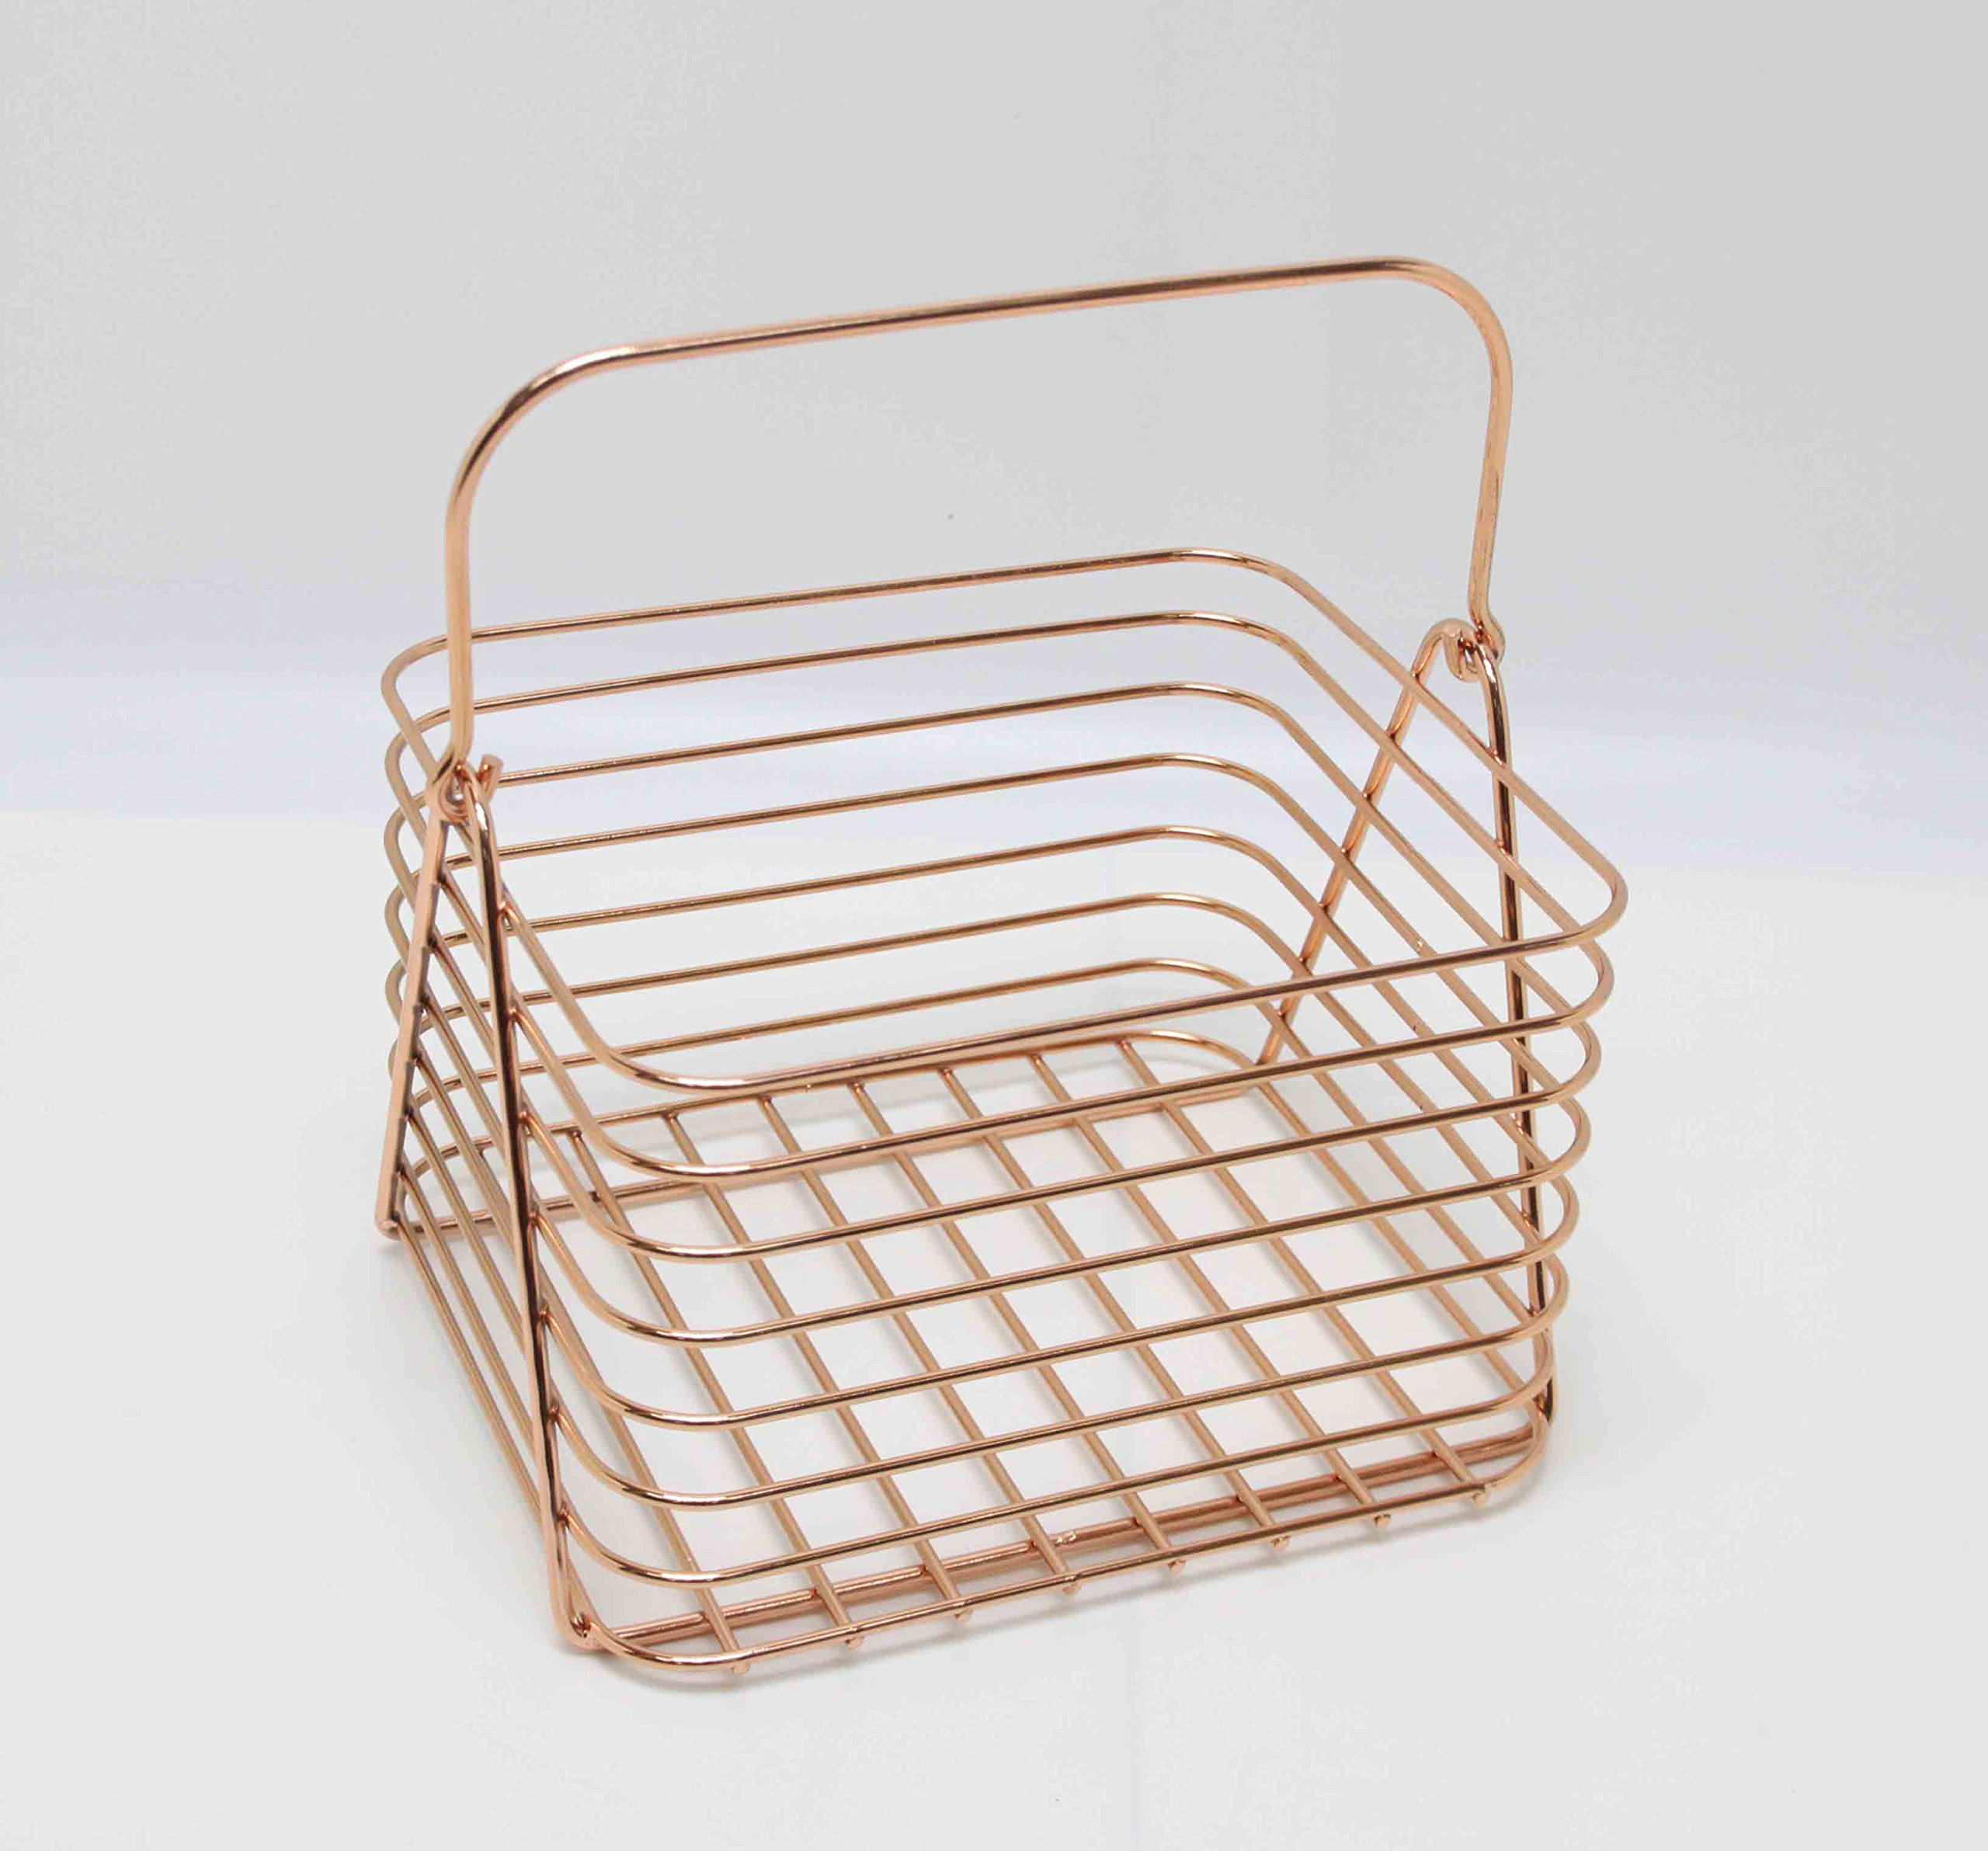 Fixture Displays Small Copper Classical Kitchen Pantry Bath Wire Basket Tote with Handle 16038